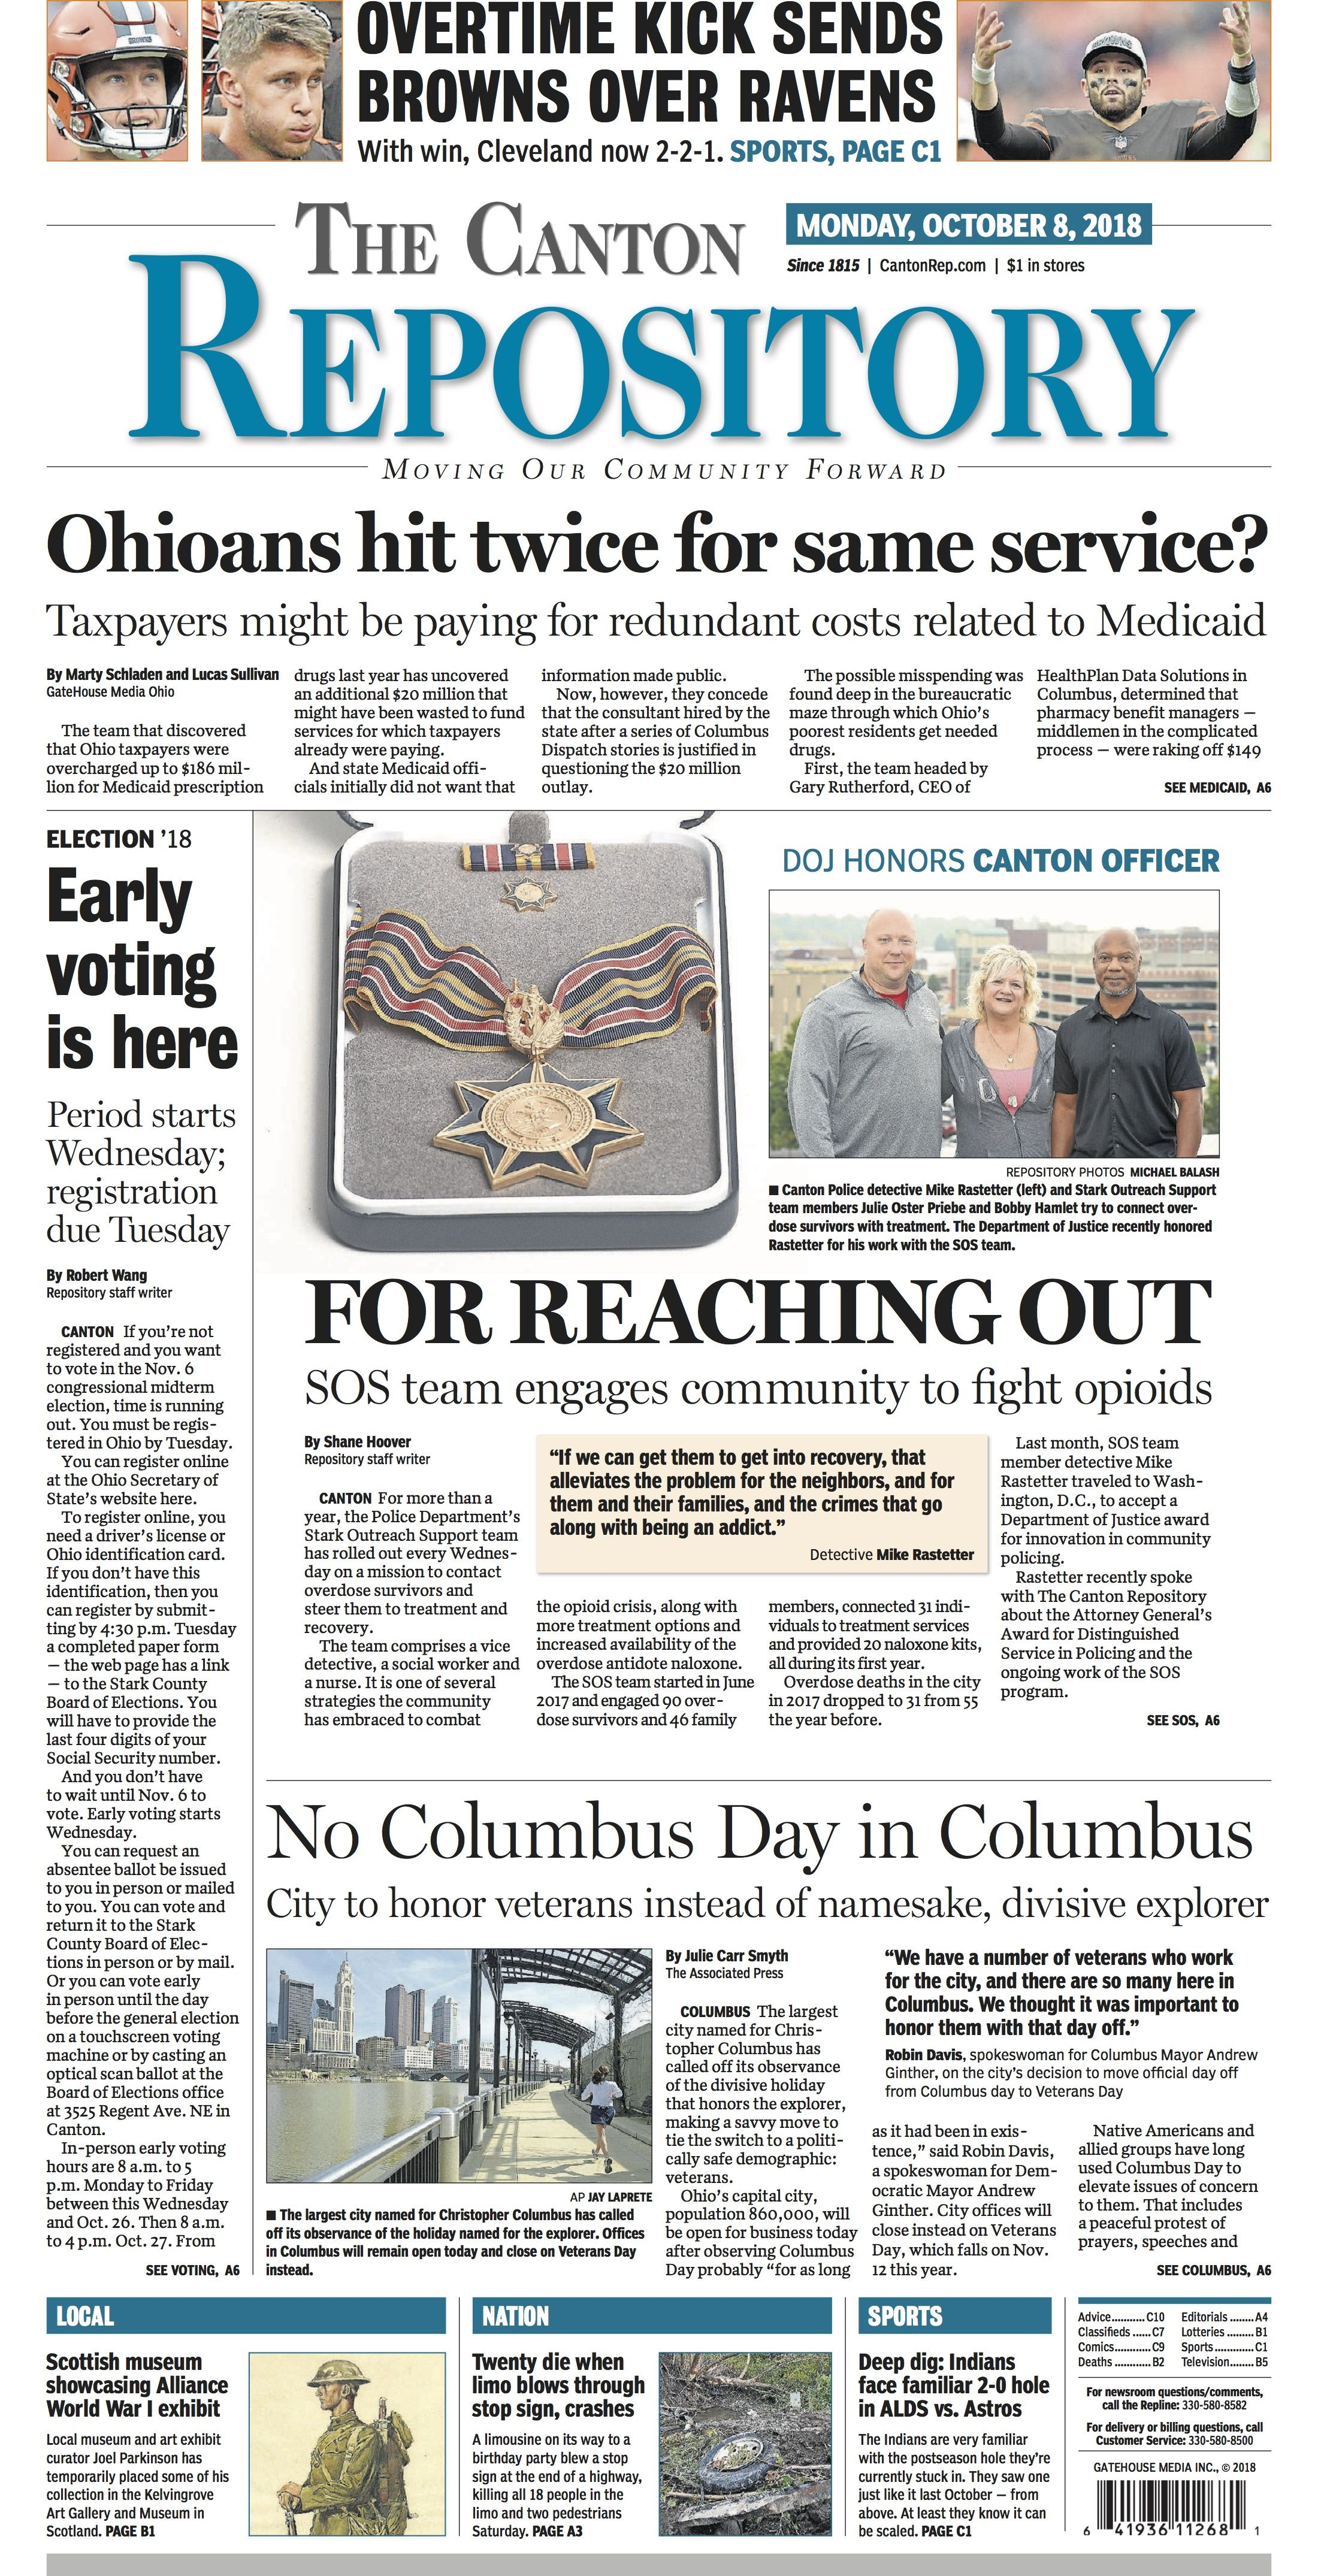 The front page of The Canton Repository for October 8